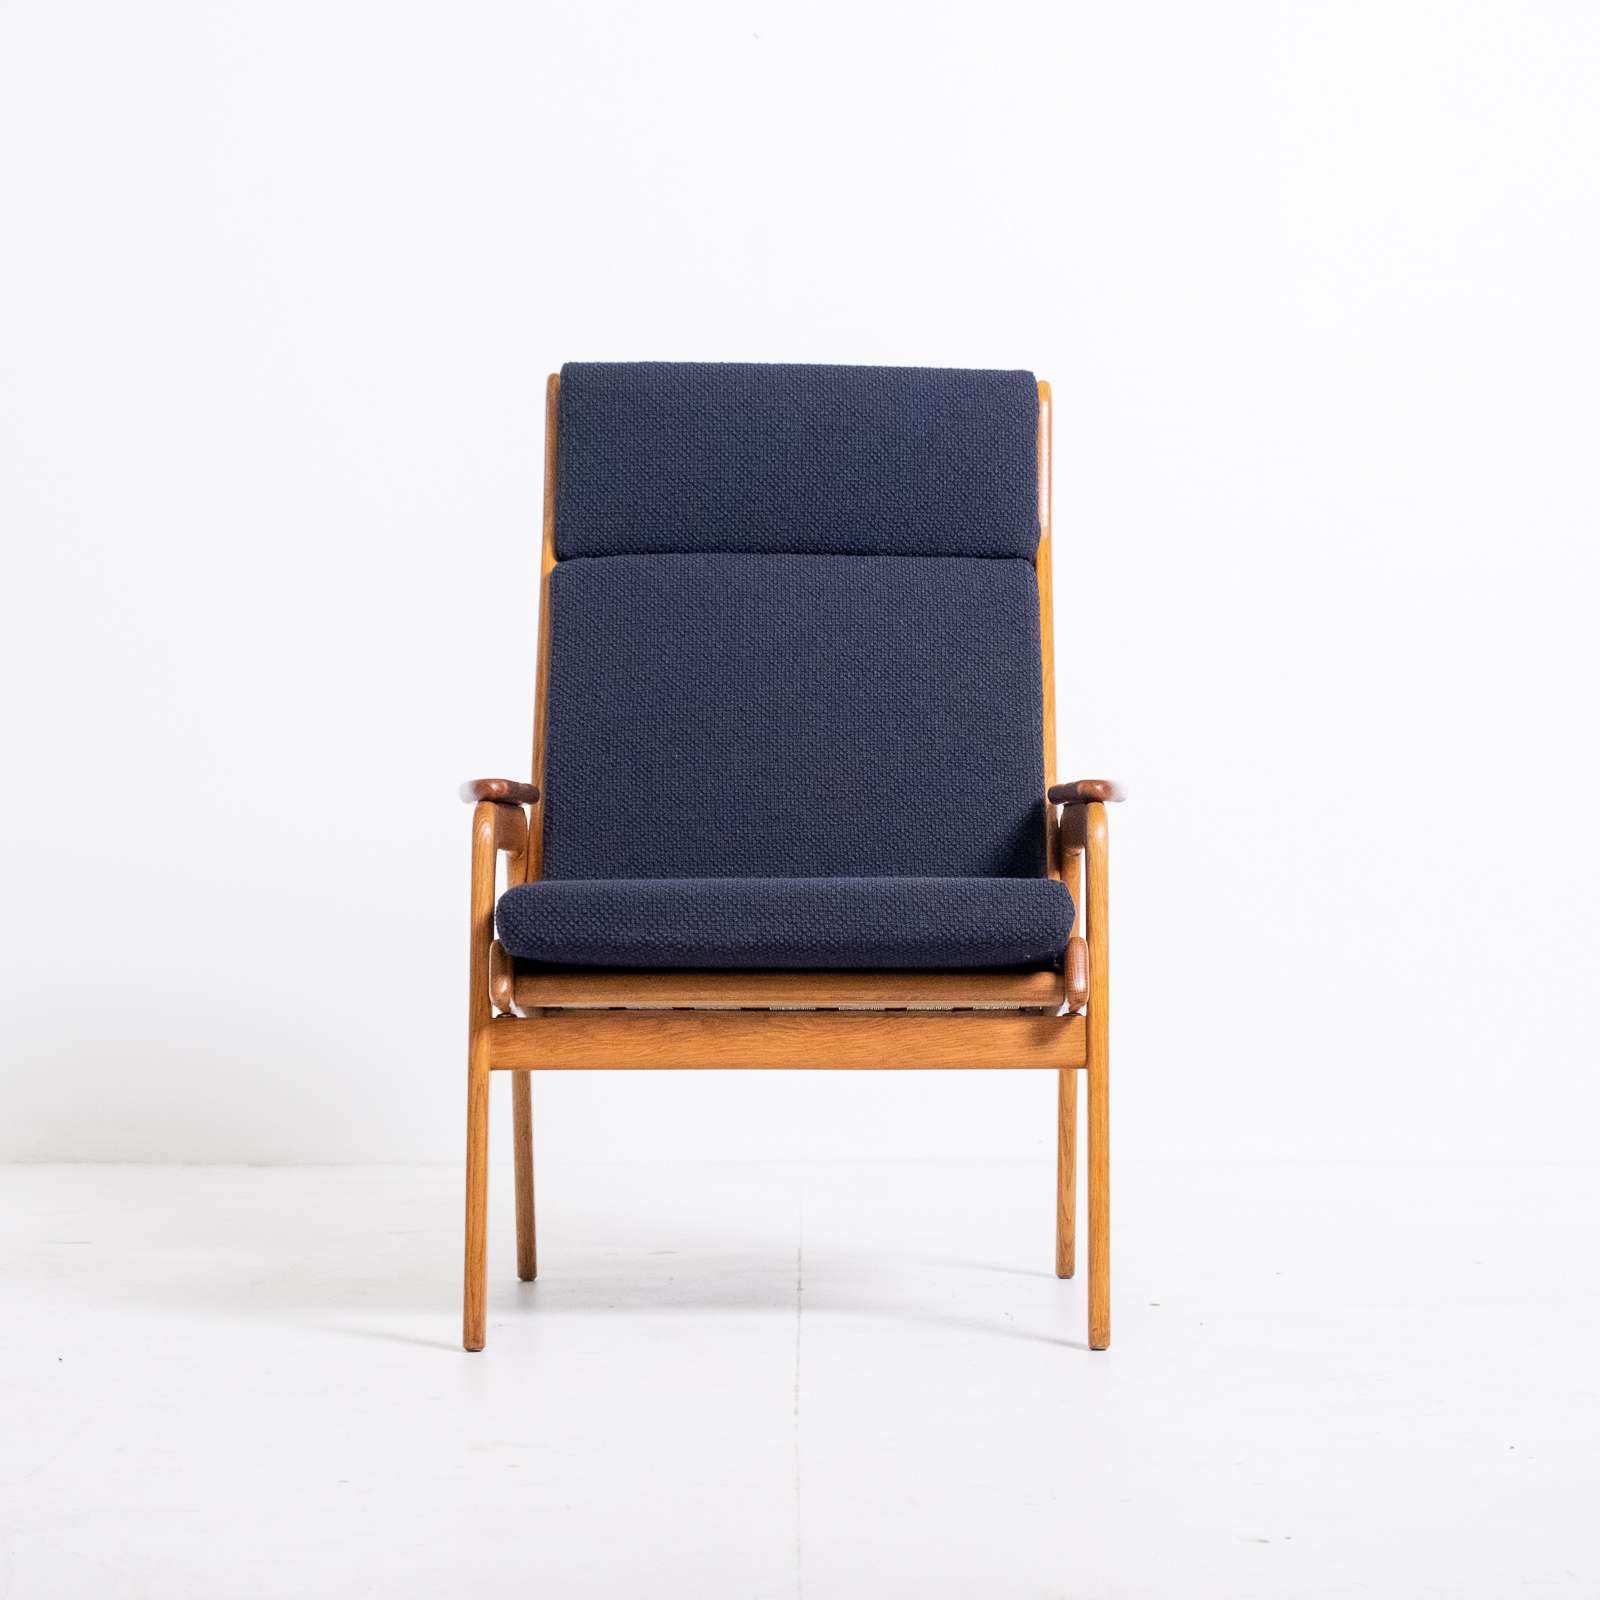 Lotus Armchair By Rob Parry For De Ster Gelderland, 1950s, The Netherlands 01